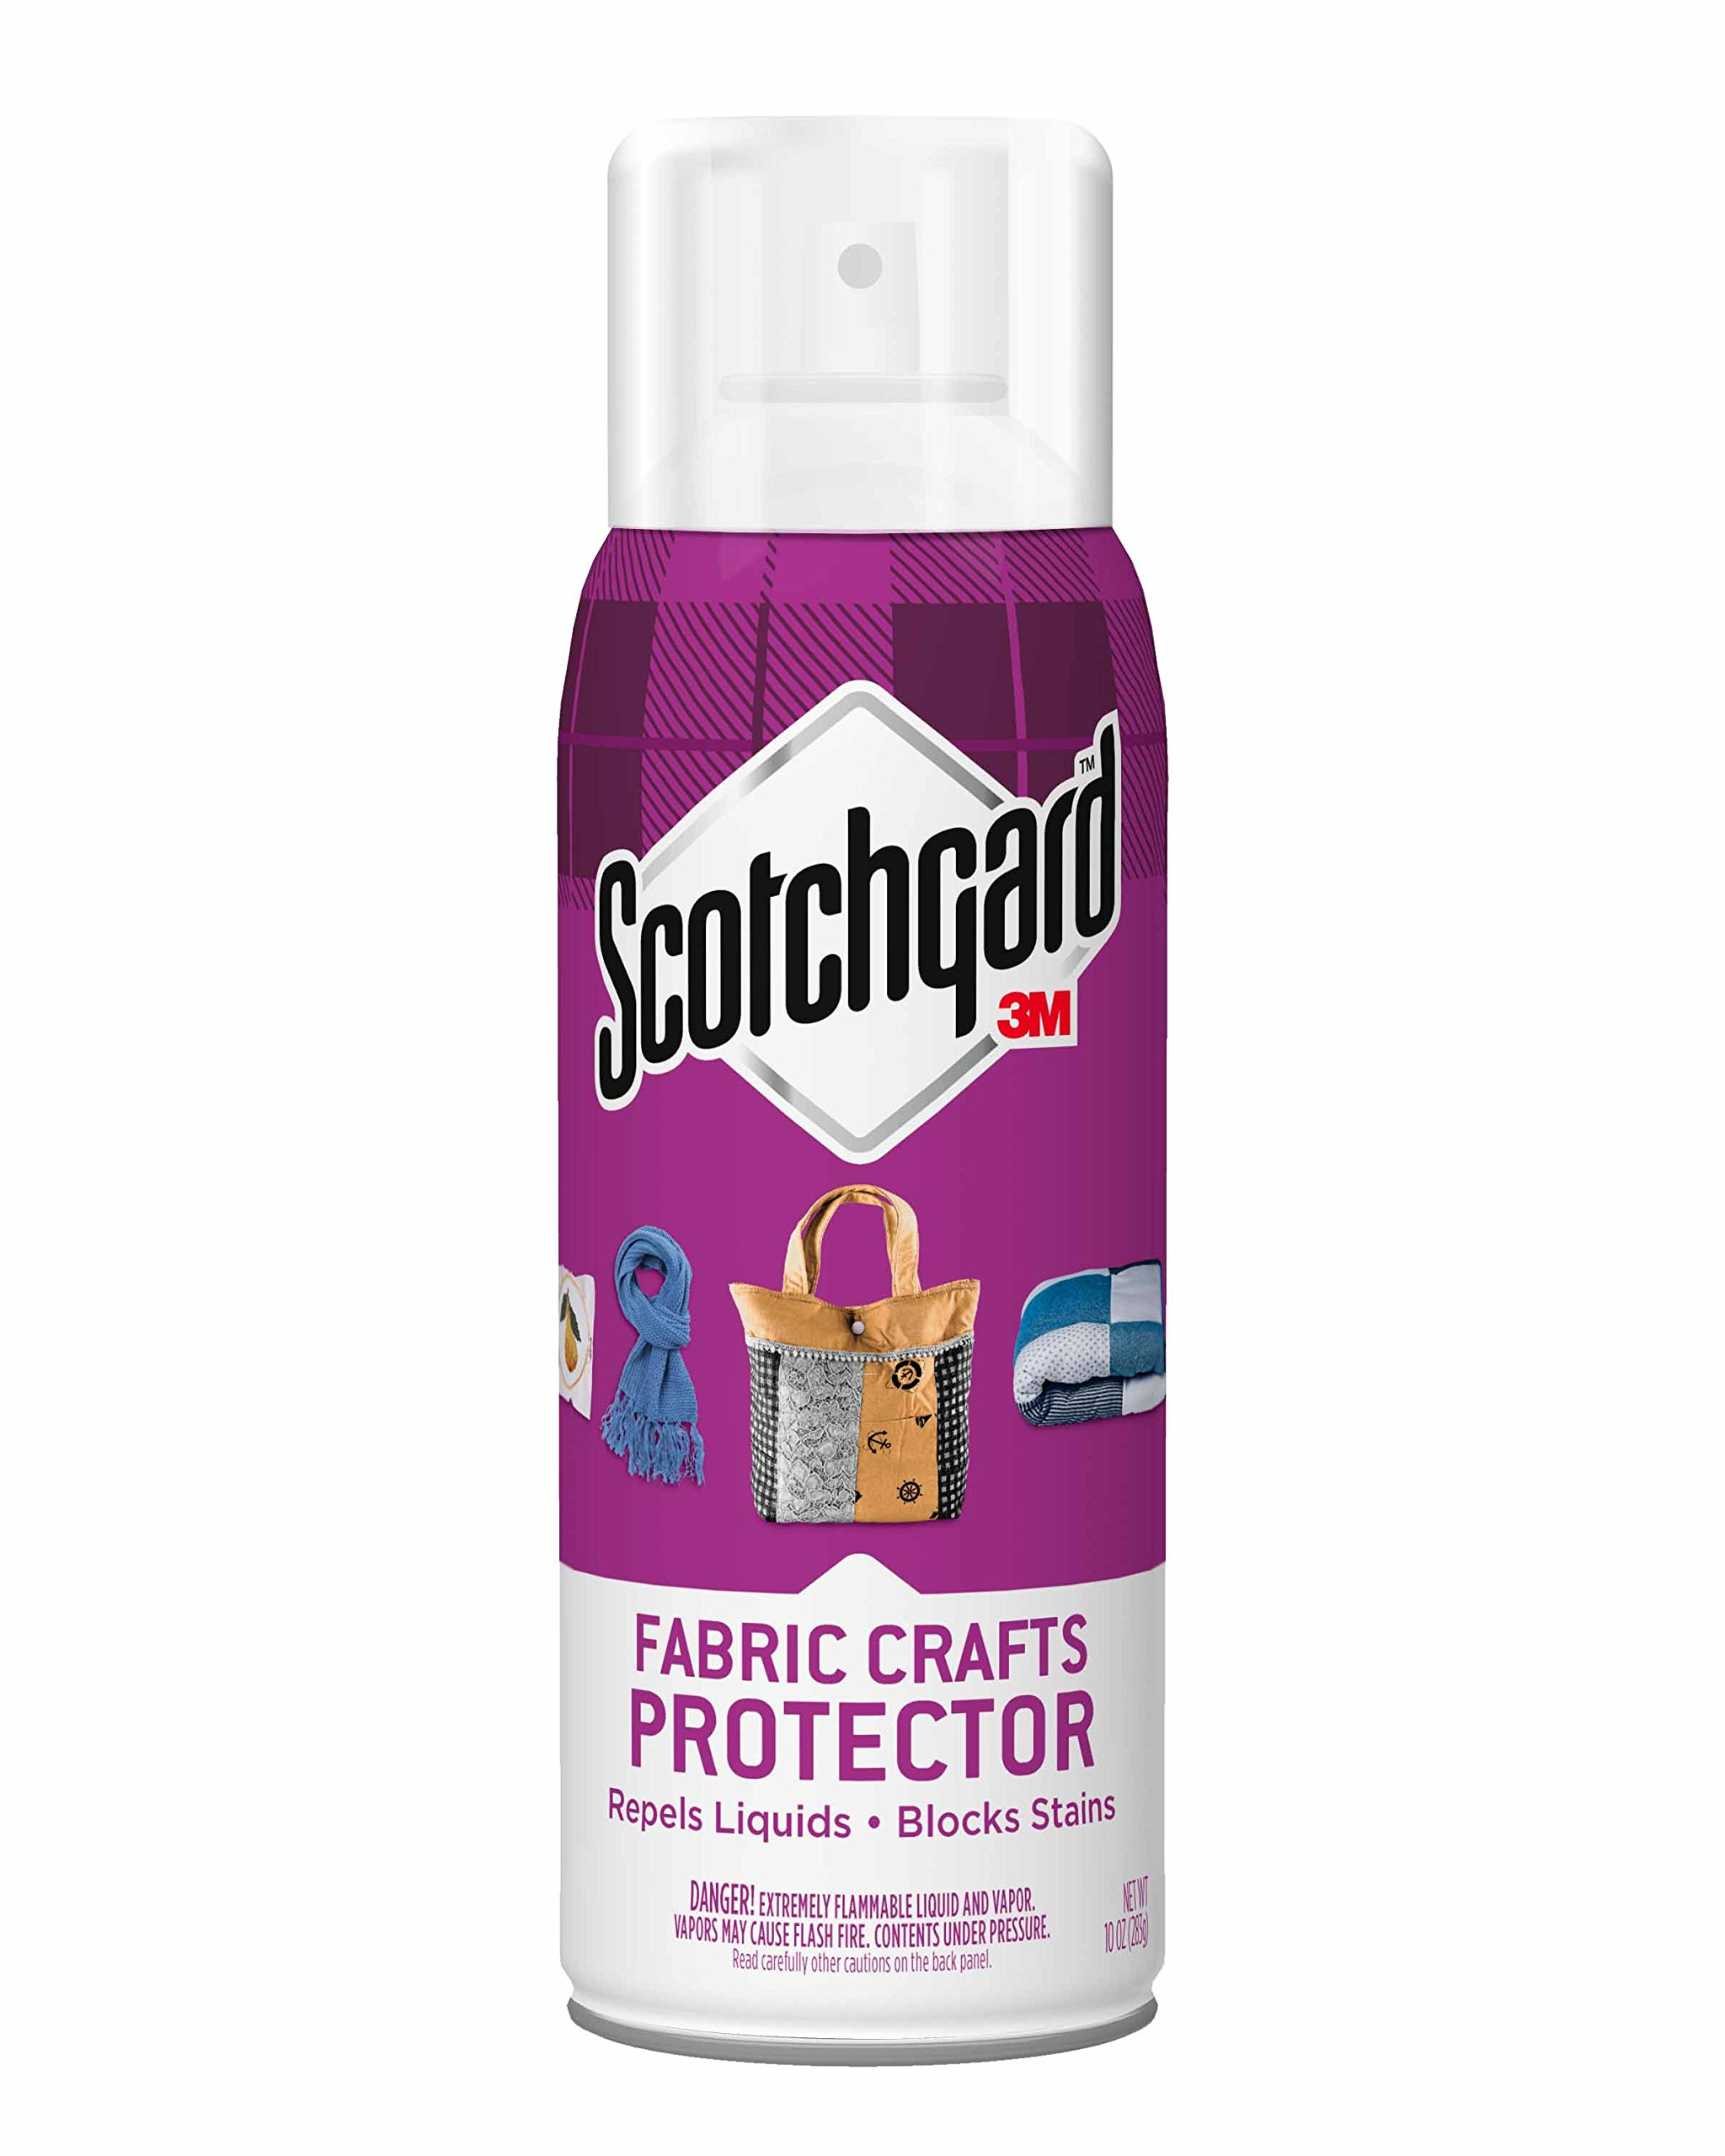 Scotchgard Fabric Crafts Protector, 1 Can, 10-Ounces